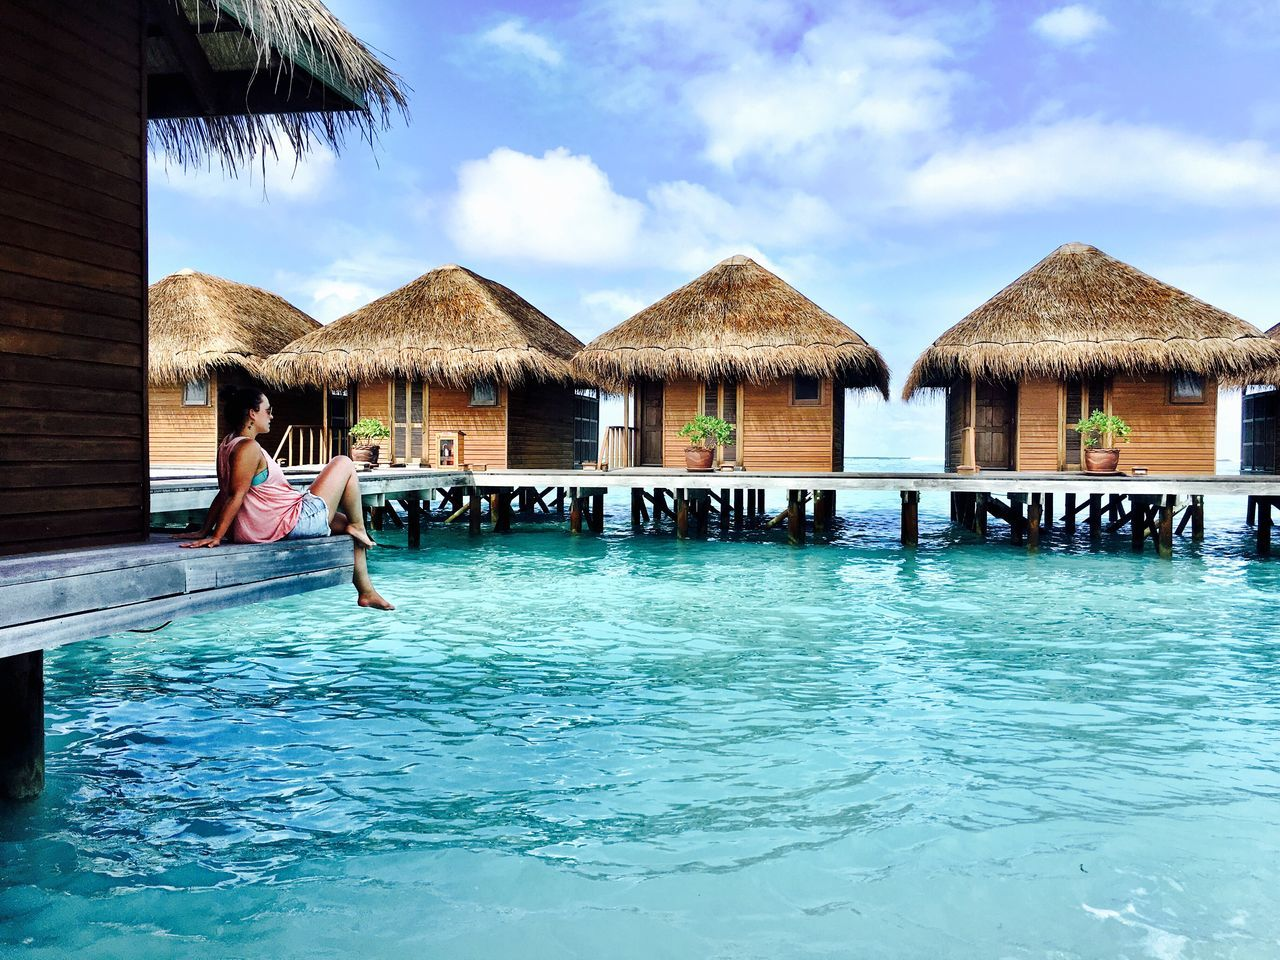 water, swimming pool, real people, thatched roof, sky, outdoors, day, sea, vacations, tourist resort, leisure activity, architecture, built structure, scenics, lifestyles, beauty in nature, one person, nature, holiday villa, people